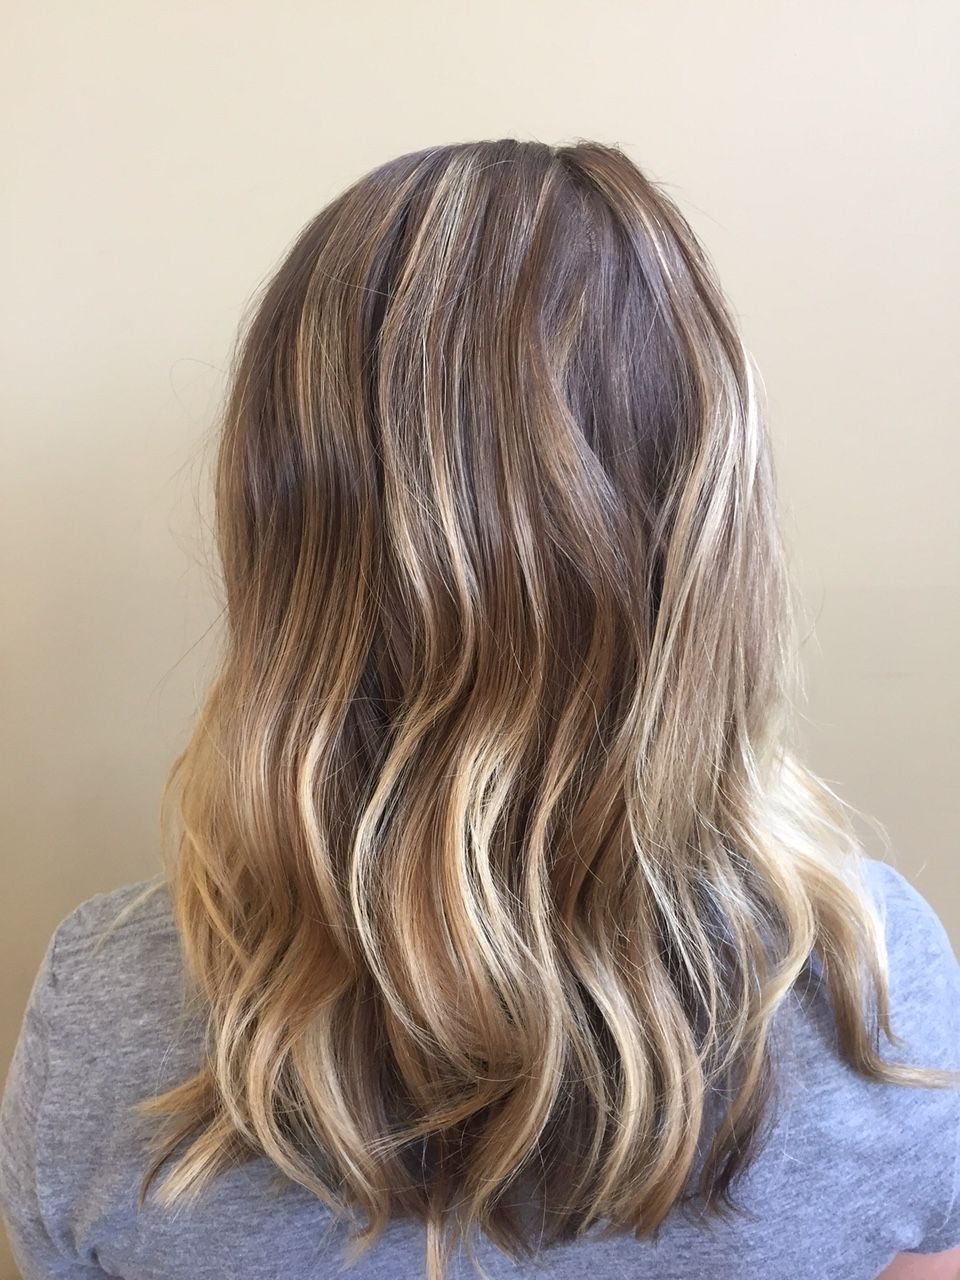 #Wedding days are very special to us at Spalon Montage. One of Stylist Bailey's clients came to see her in February to make sure that her #color was just right for the day of her wedding. She just finished her last of 3 #balayage treatments to give her the look that she loves! She is now wedding ready thanks to Stylist Bailey at our #Chanhassen location!